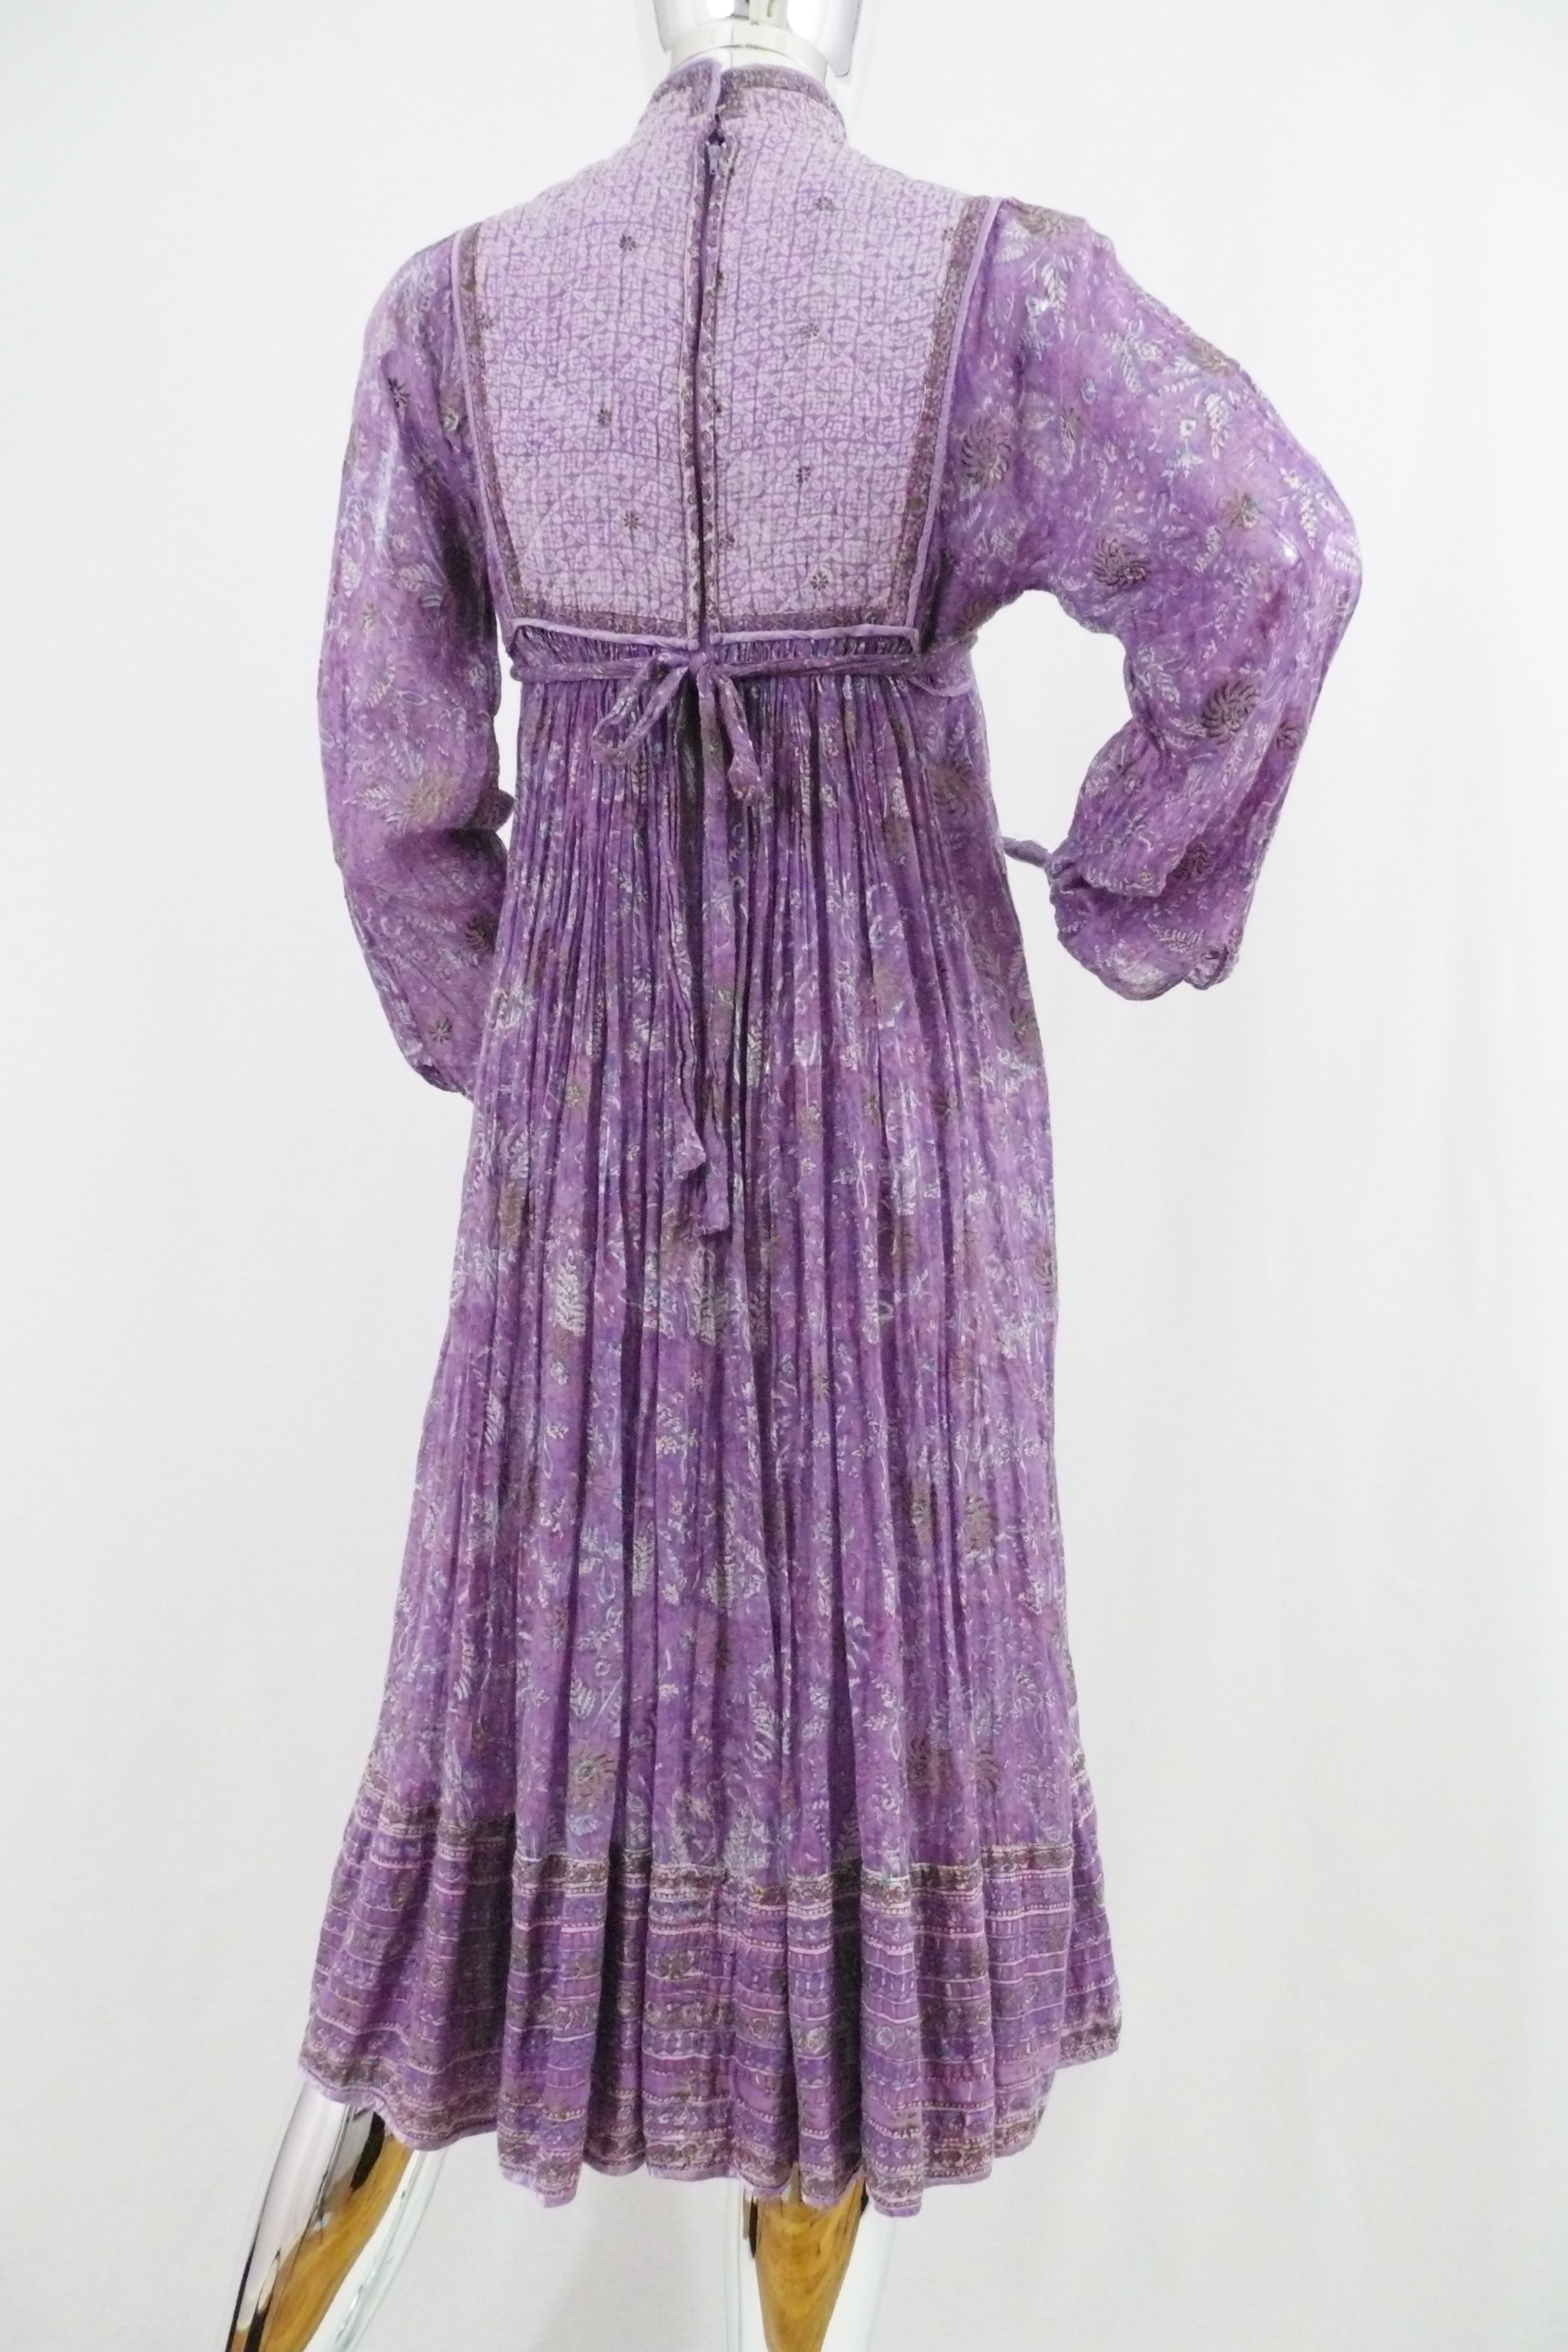 Lavender Cotton Indian Dress with High Neck